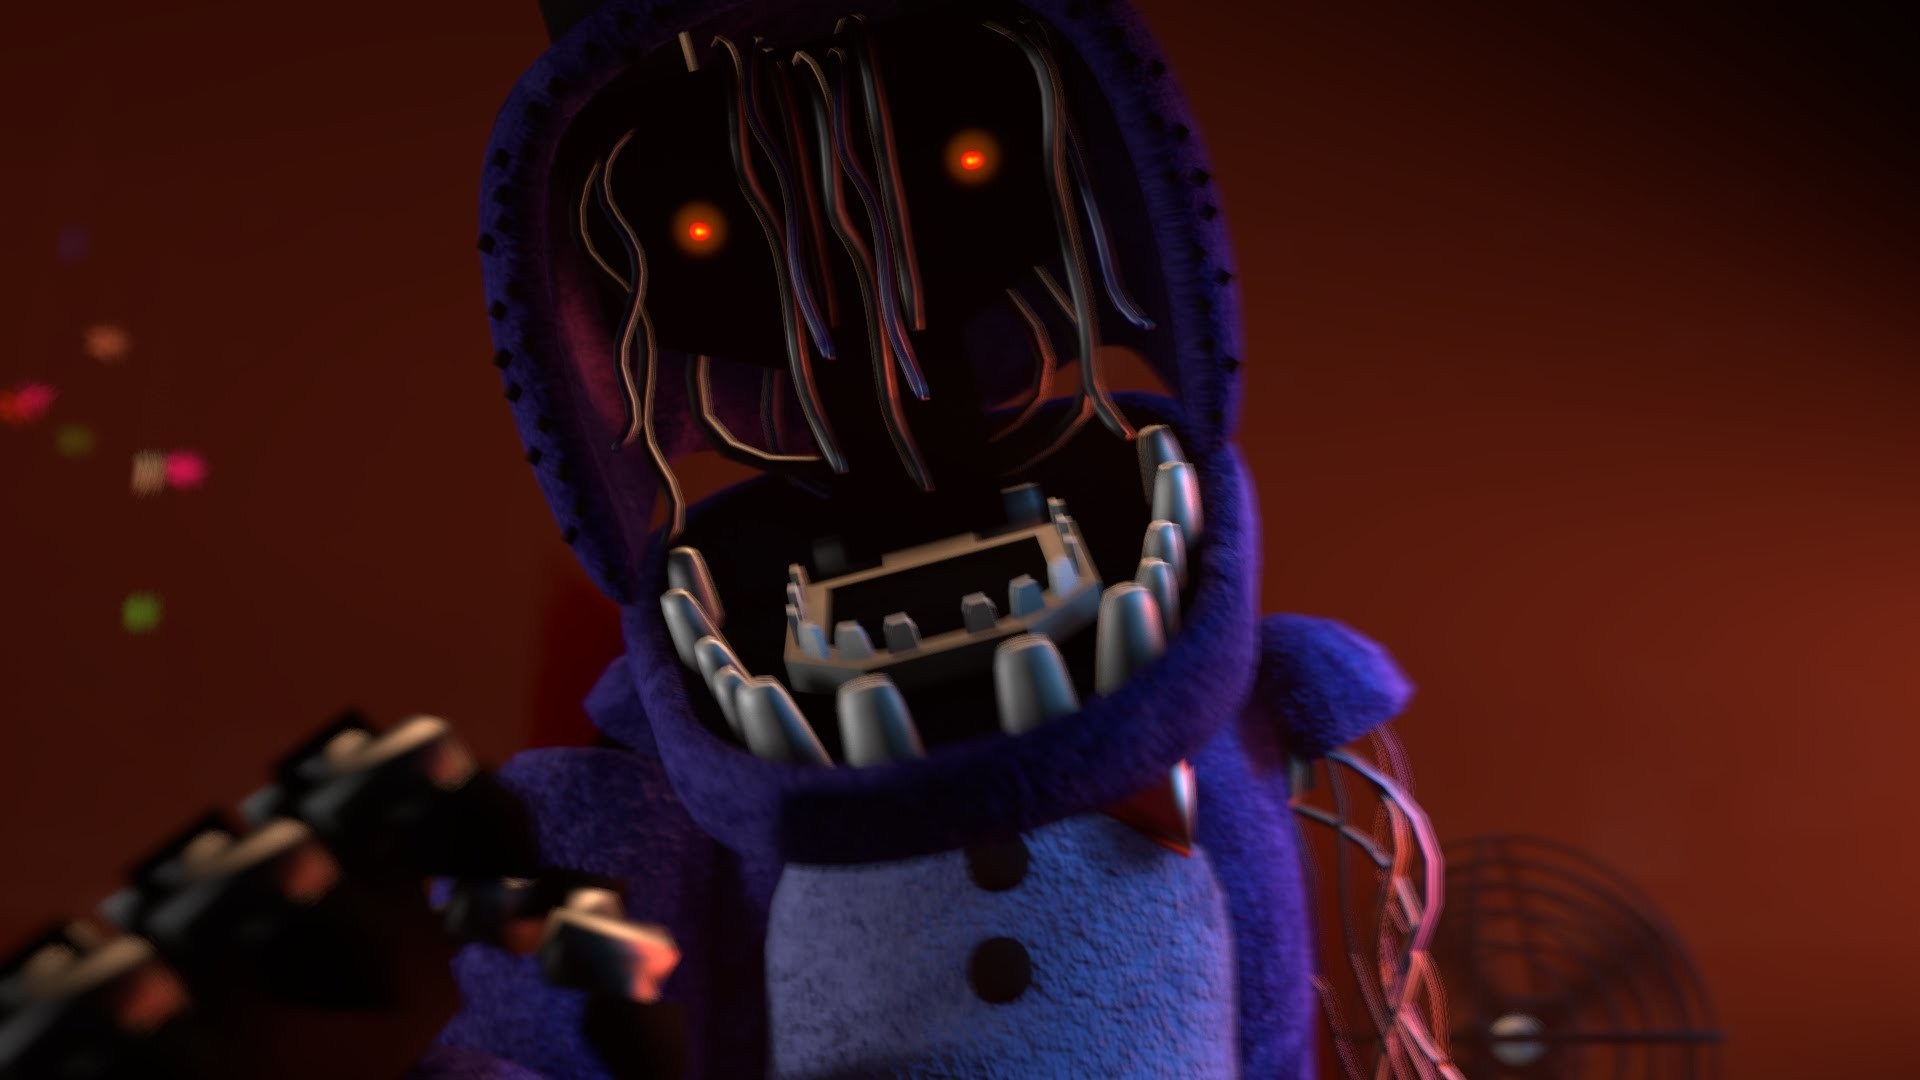 [FNAF SFM] Withered Bonnie Jumpscare (New Model) – YouTube